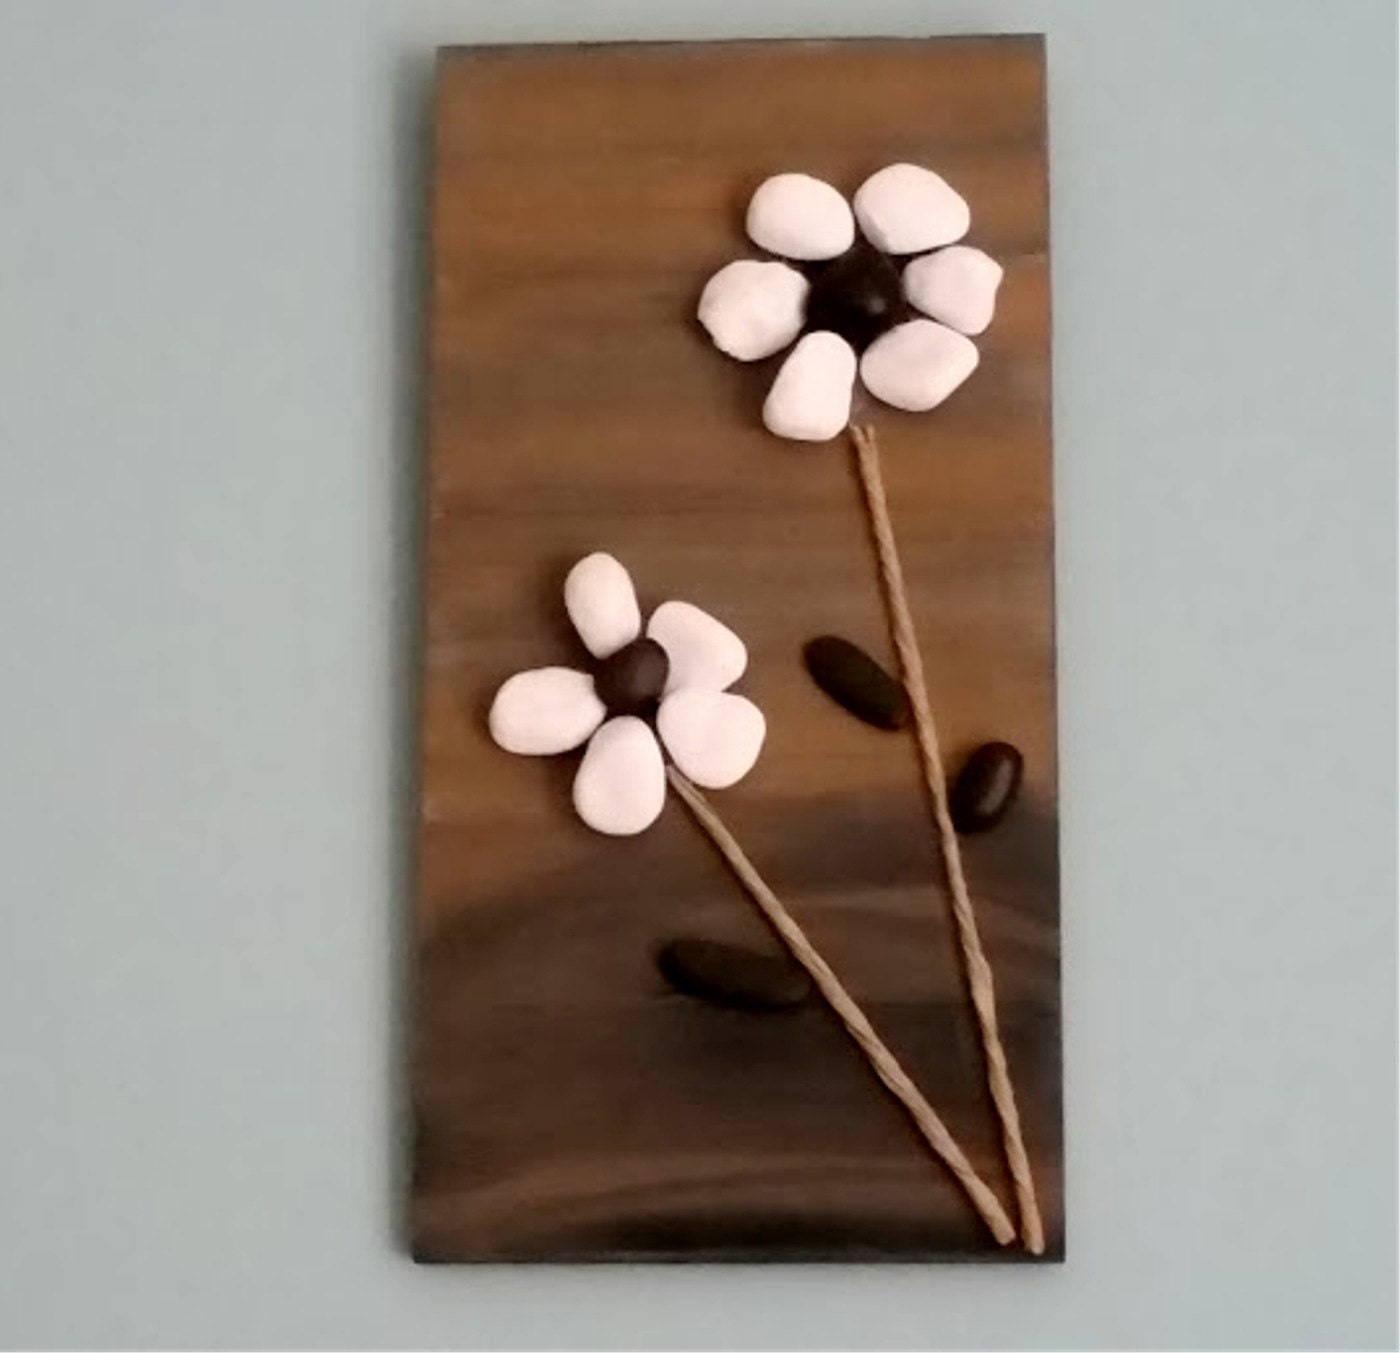 Rock art home decor beach pebble flowers stone wall hanging for Rock home decor